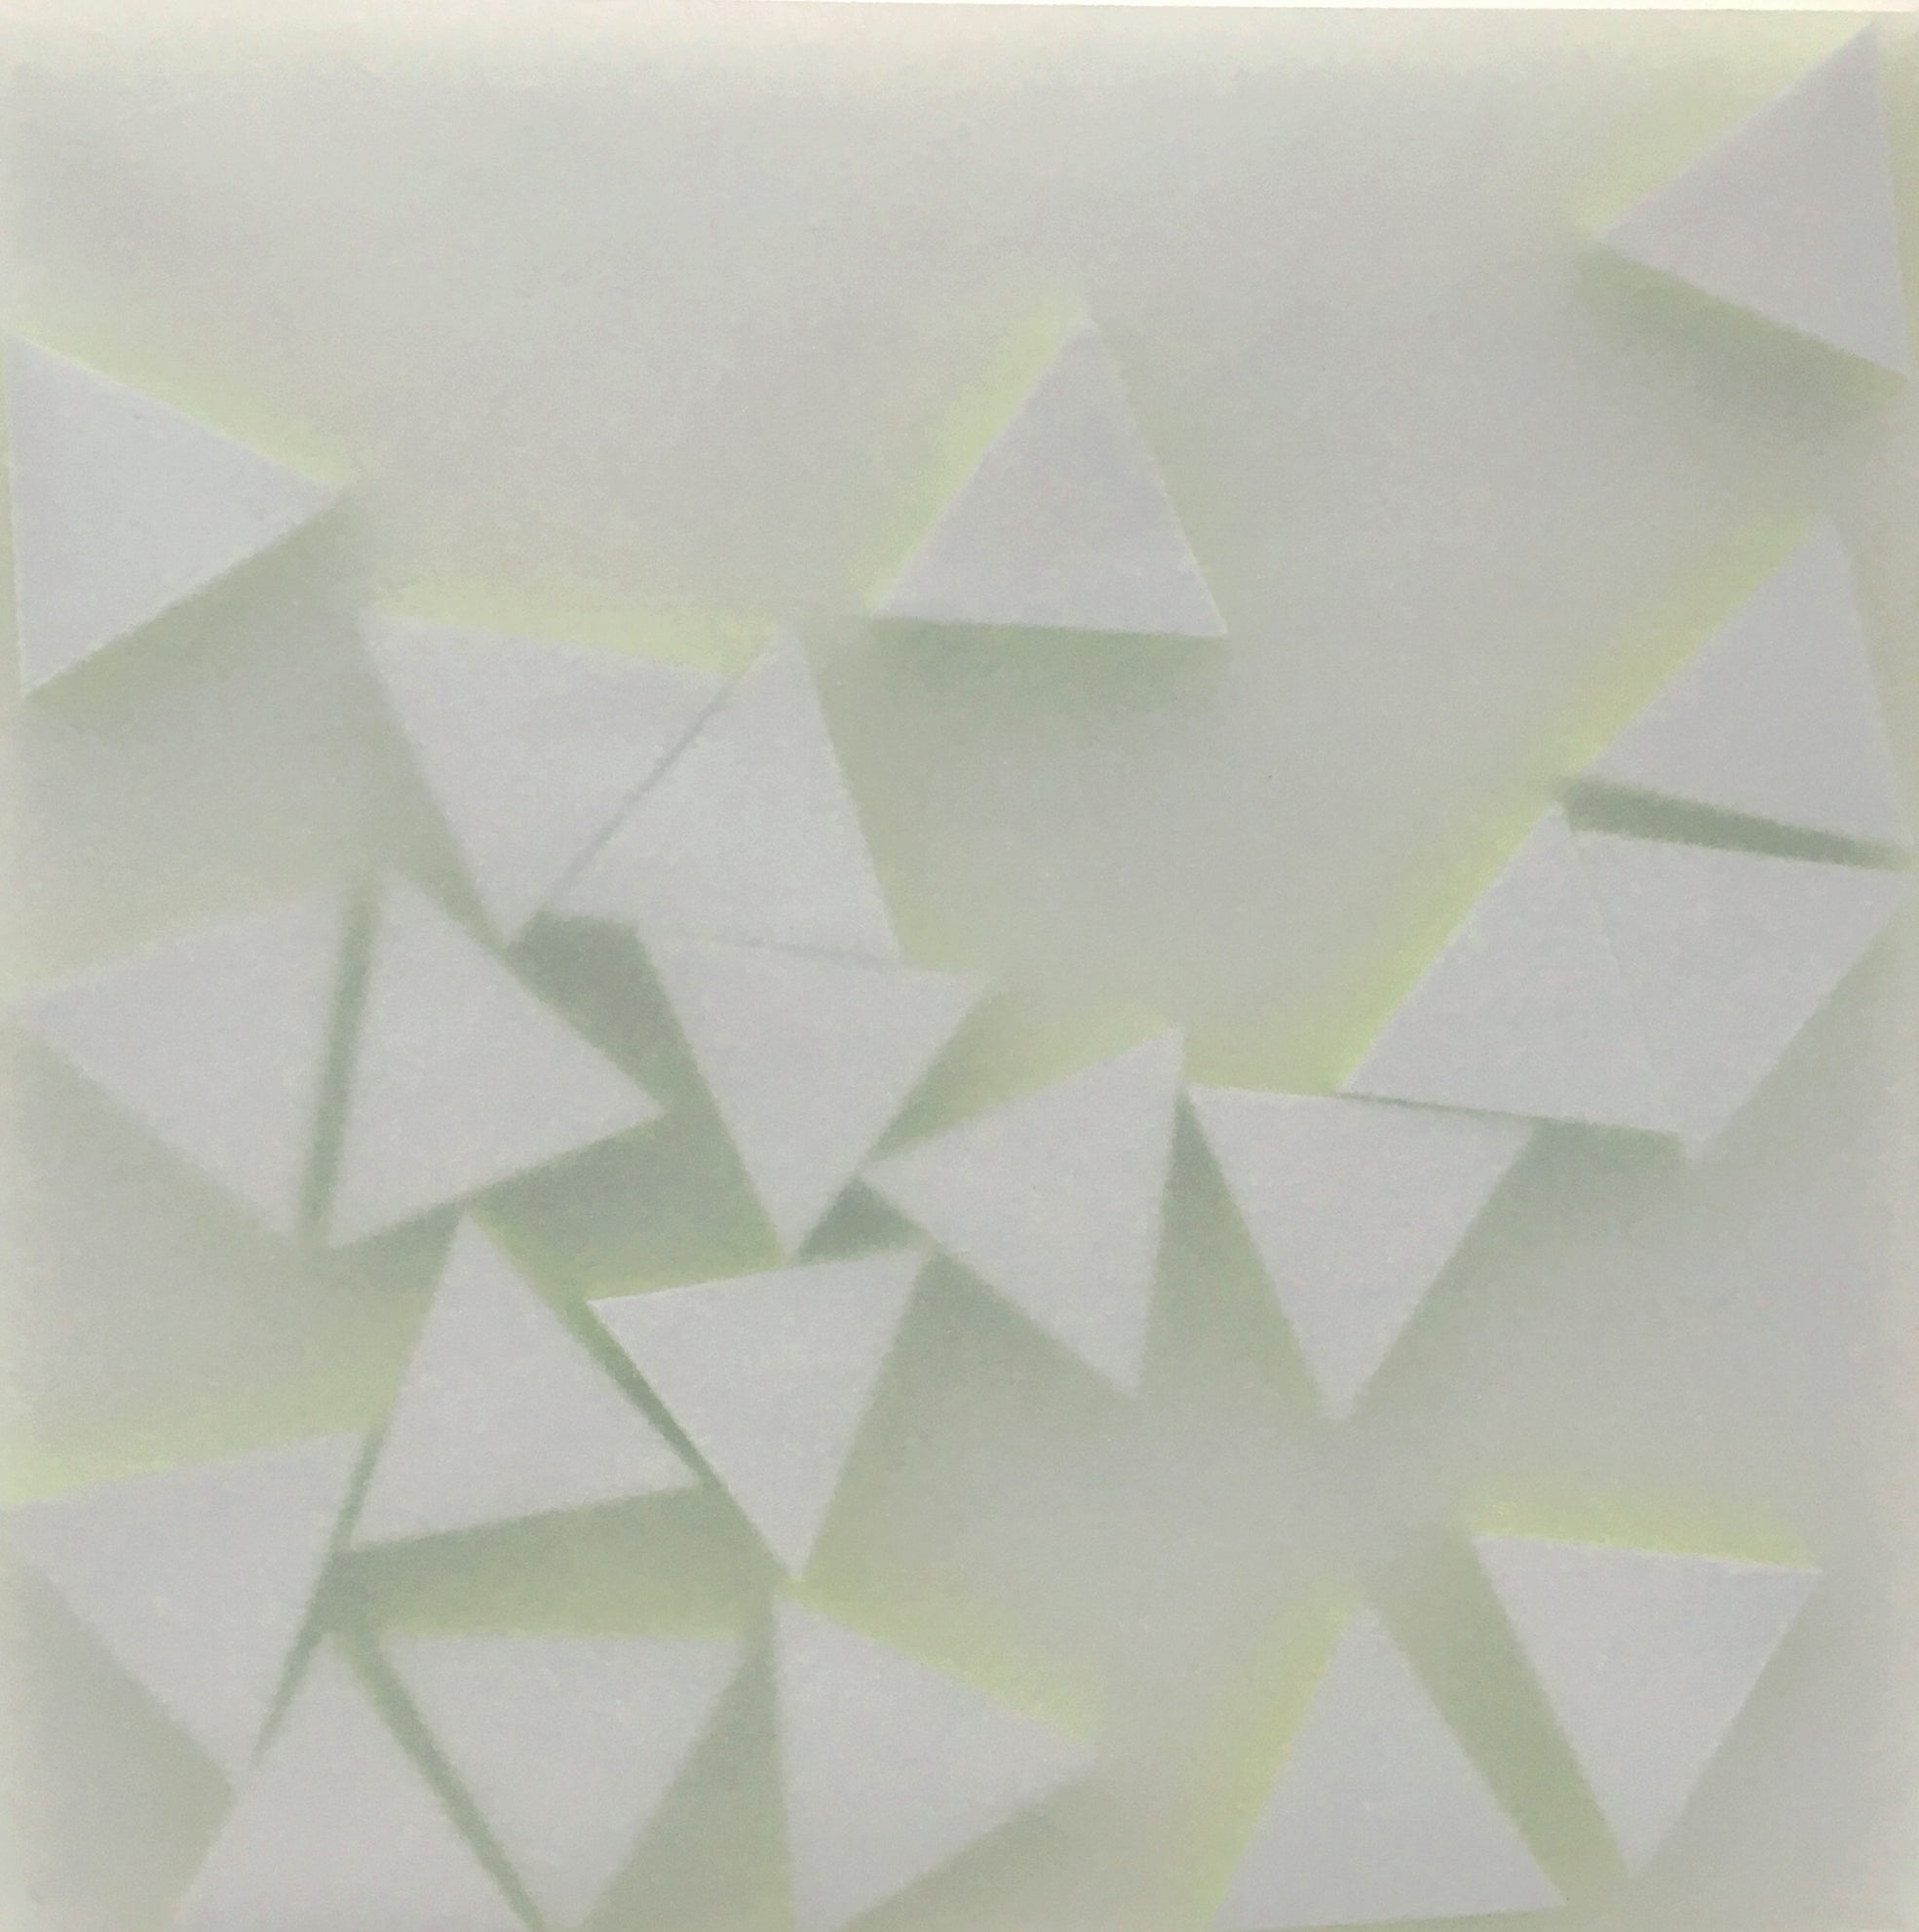 Norma Márquez Orozco, 21 Grey Triangles with Yellow Neon, 2019, Paper, 25 X 25